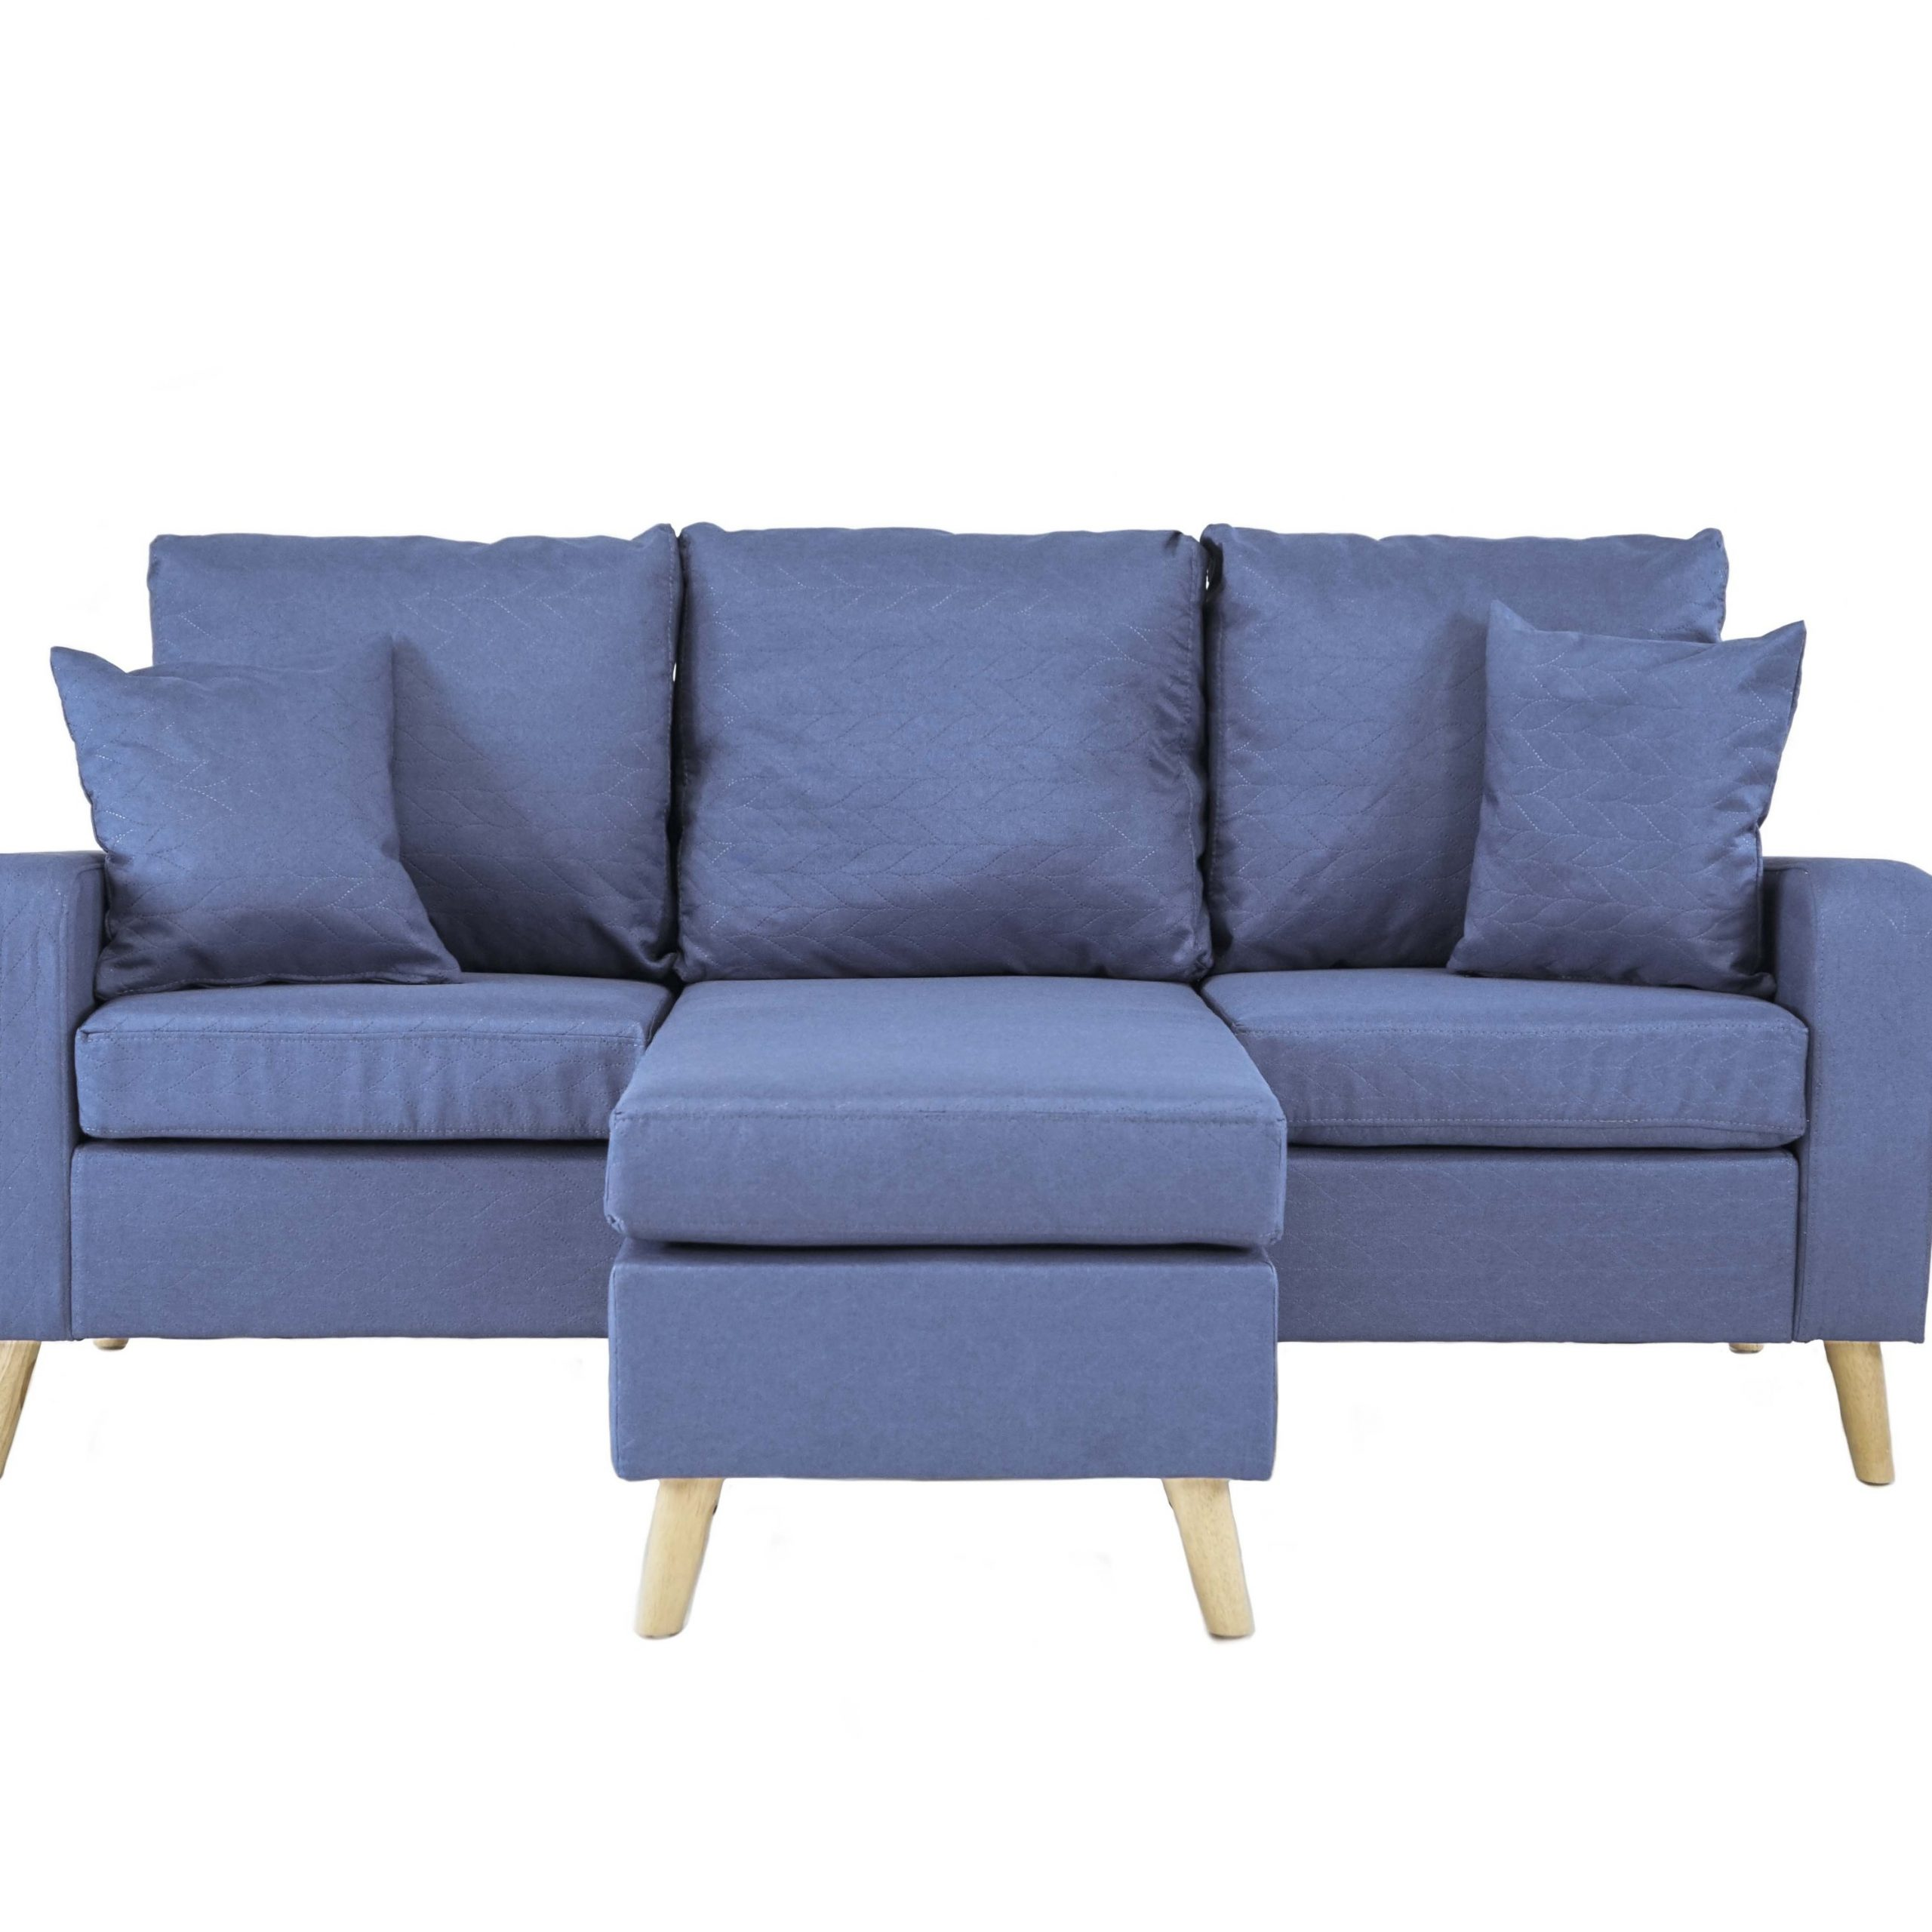 Light Blue Small Space Furniture Sectional Sofa With Within Dulce Mid Century Chaise Sofas Dark Blue (View 7 of 15)